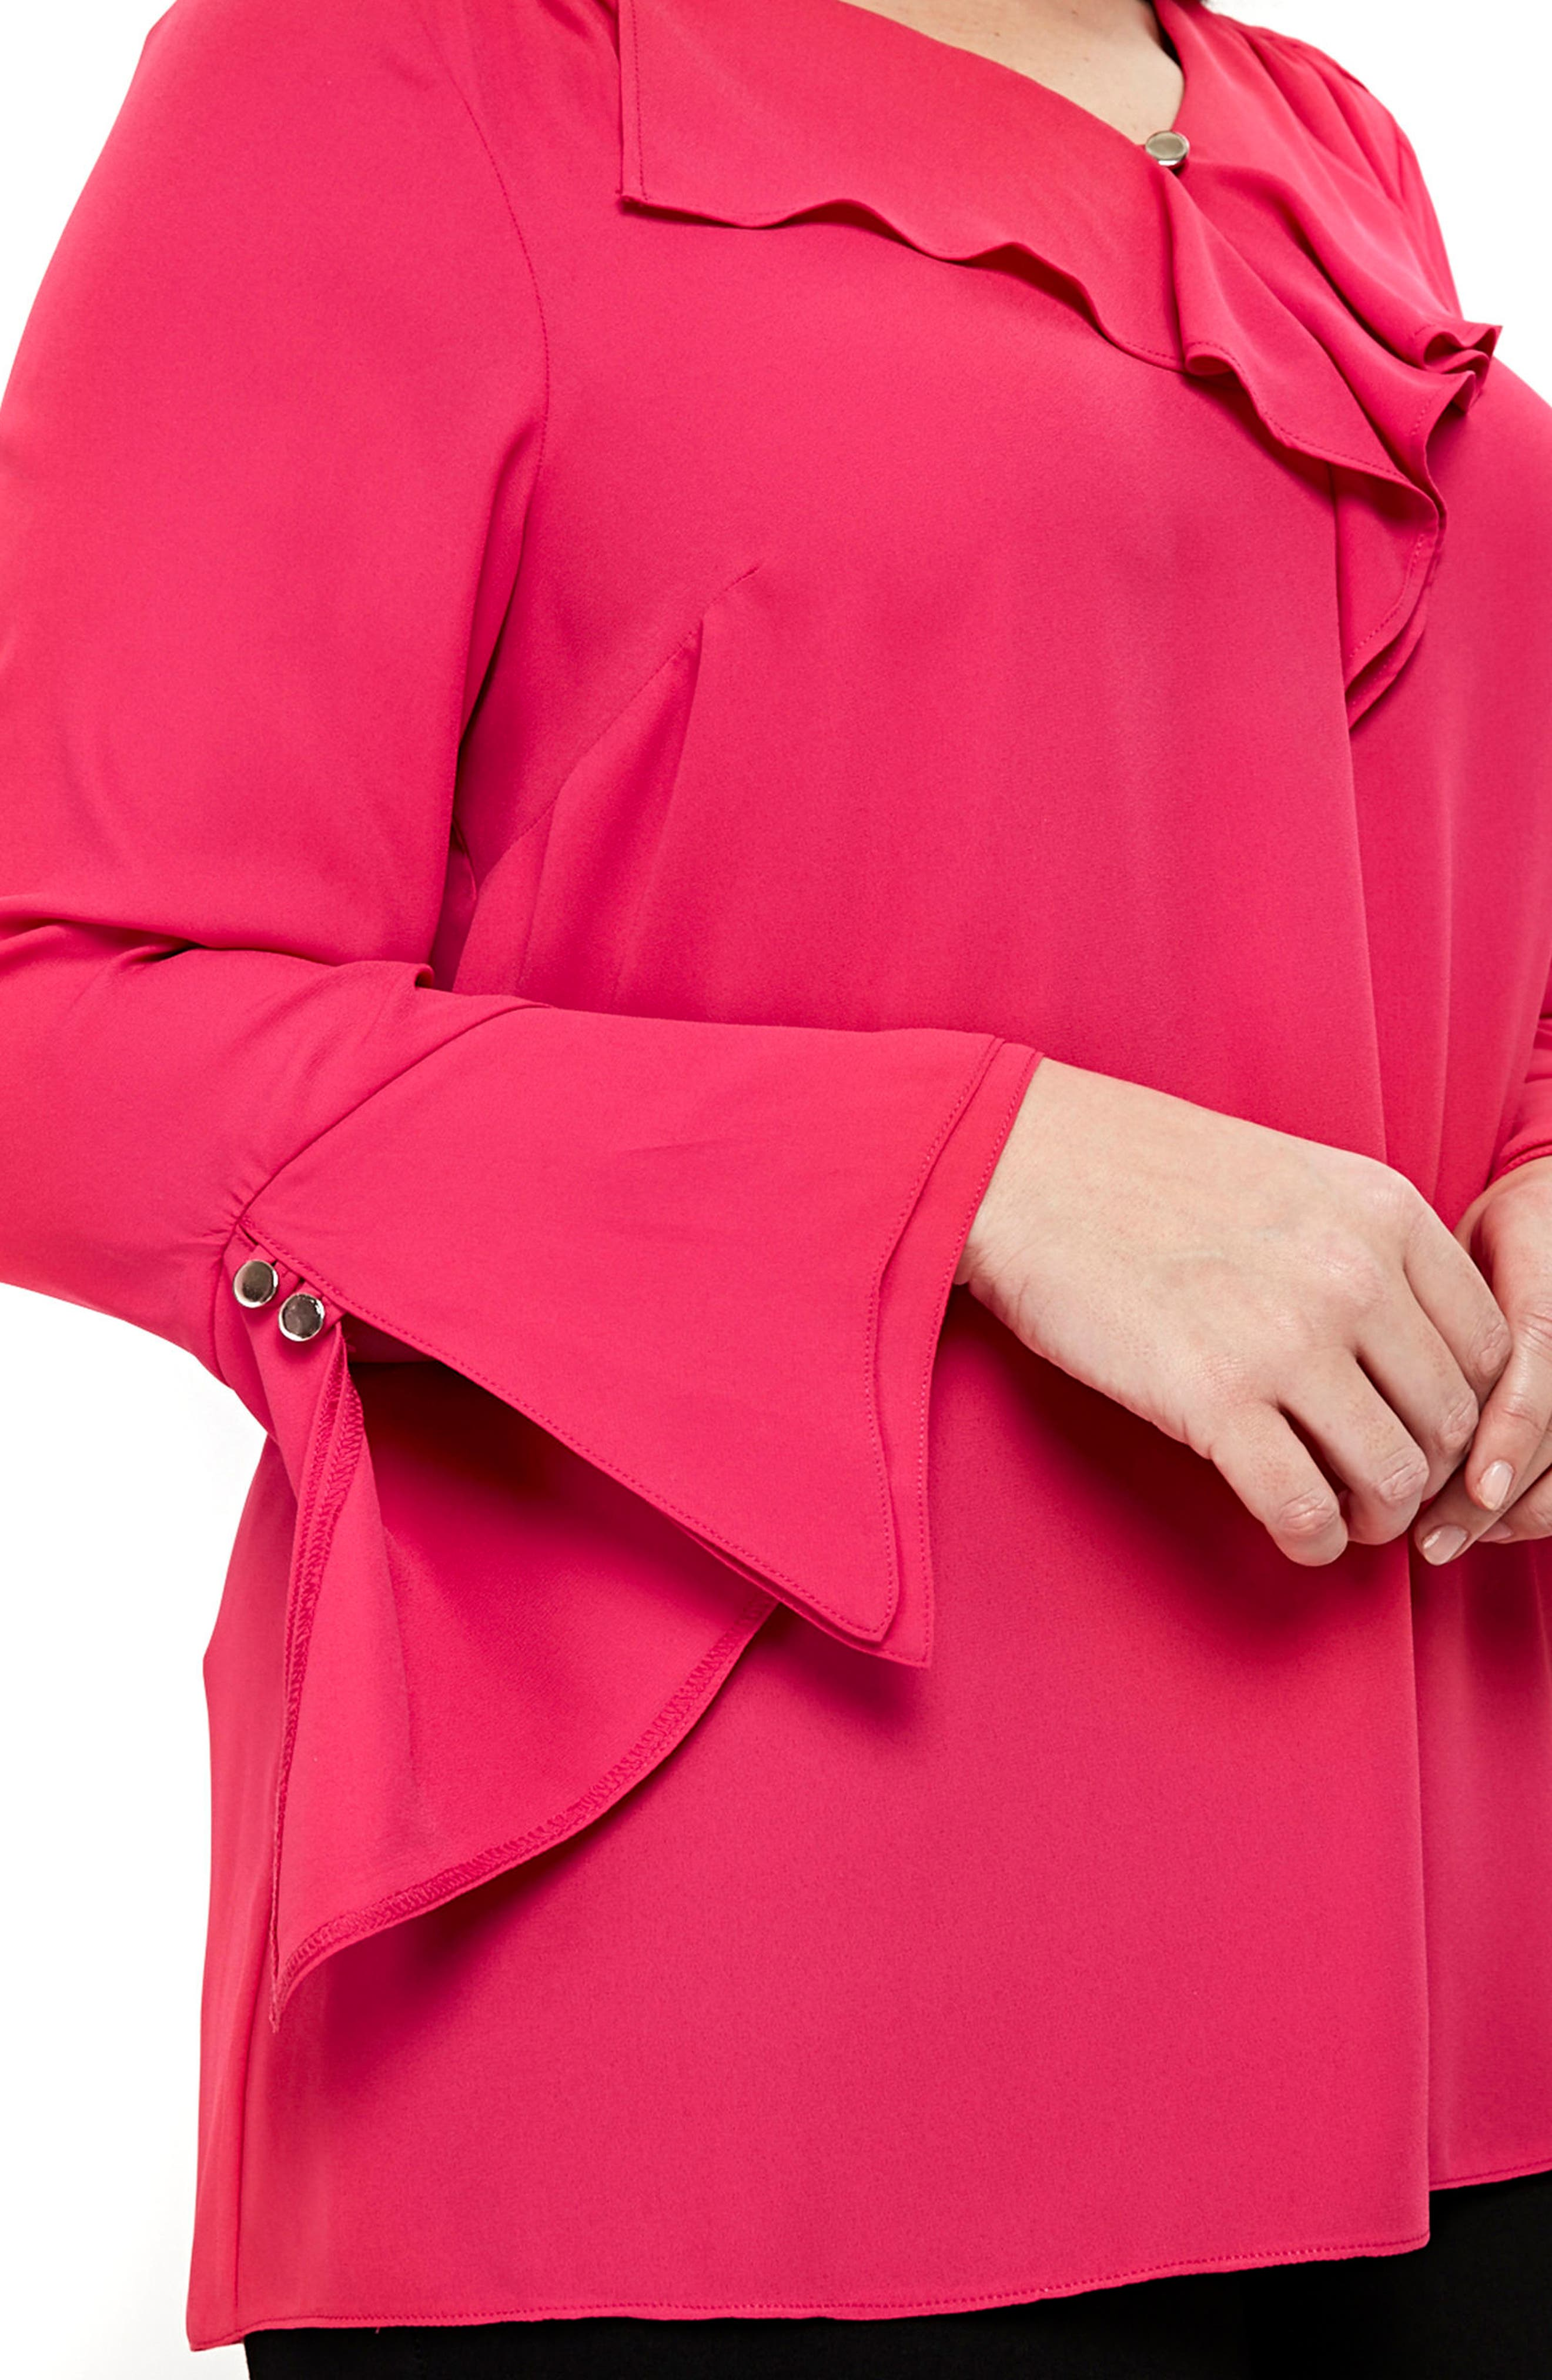 Ruffle Neck Bell Sleeve Top,                             Alternate thumbnail 2, color,                             Pink